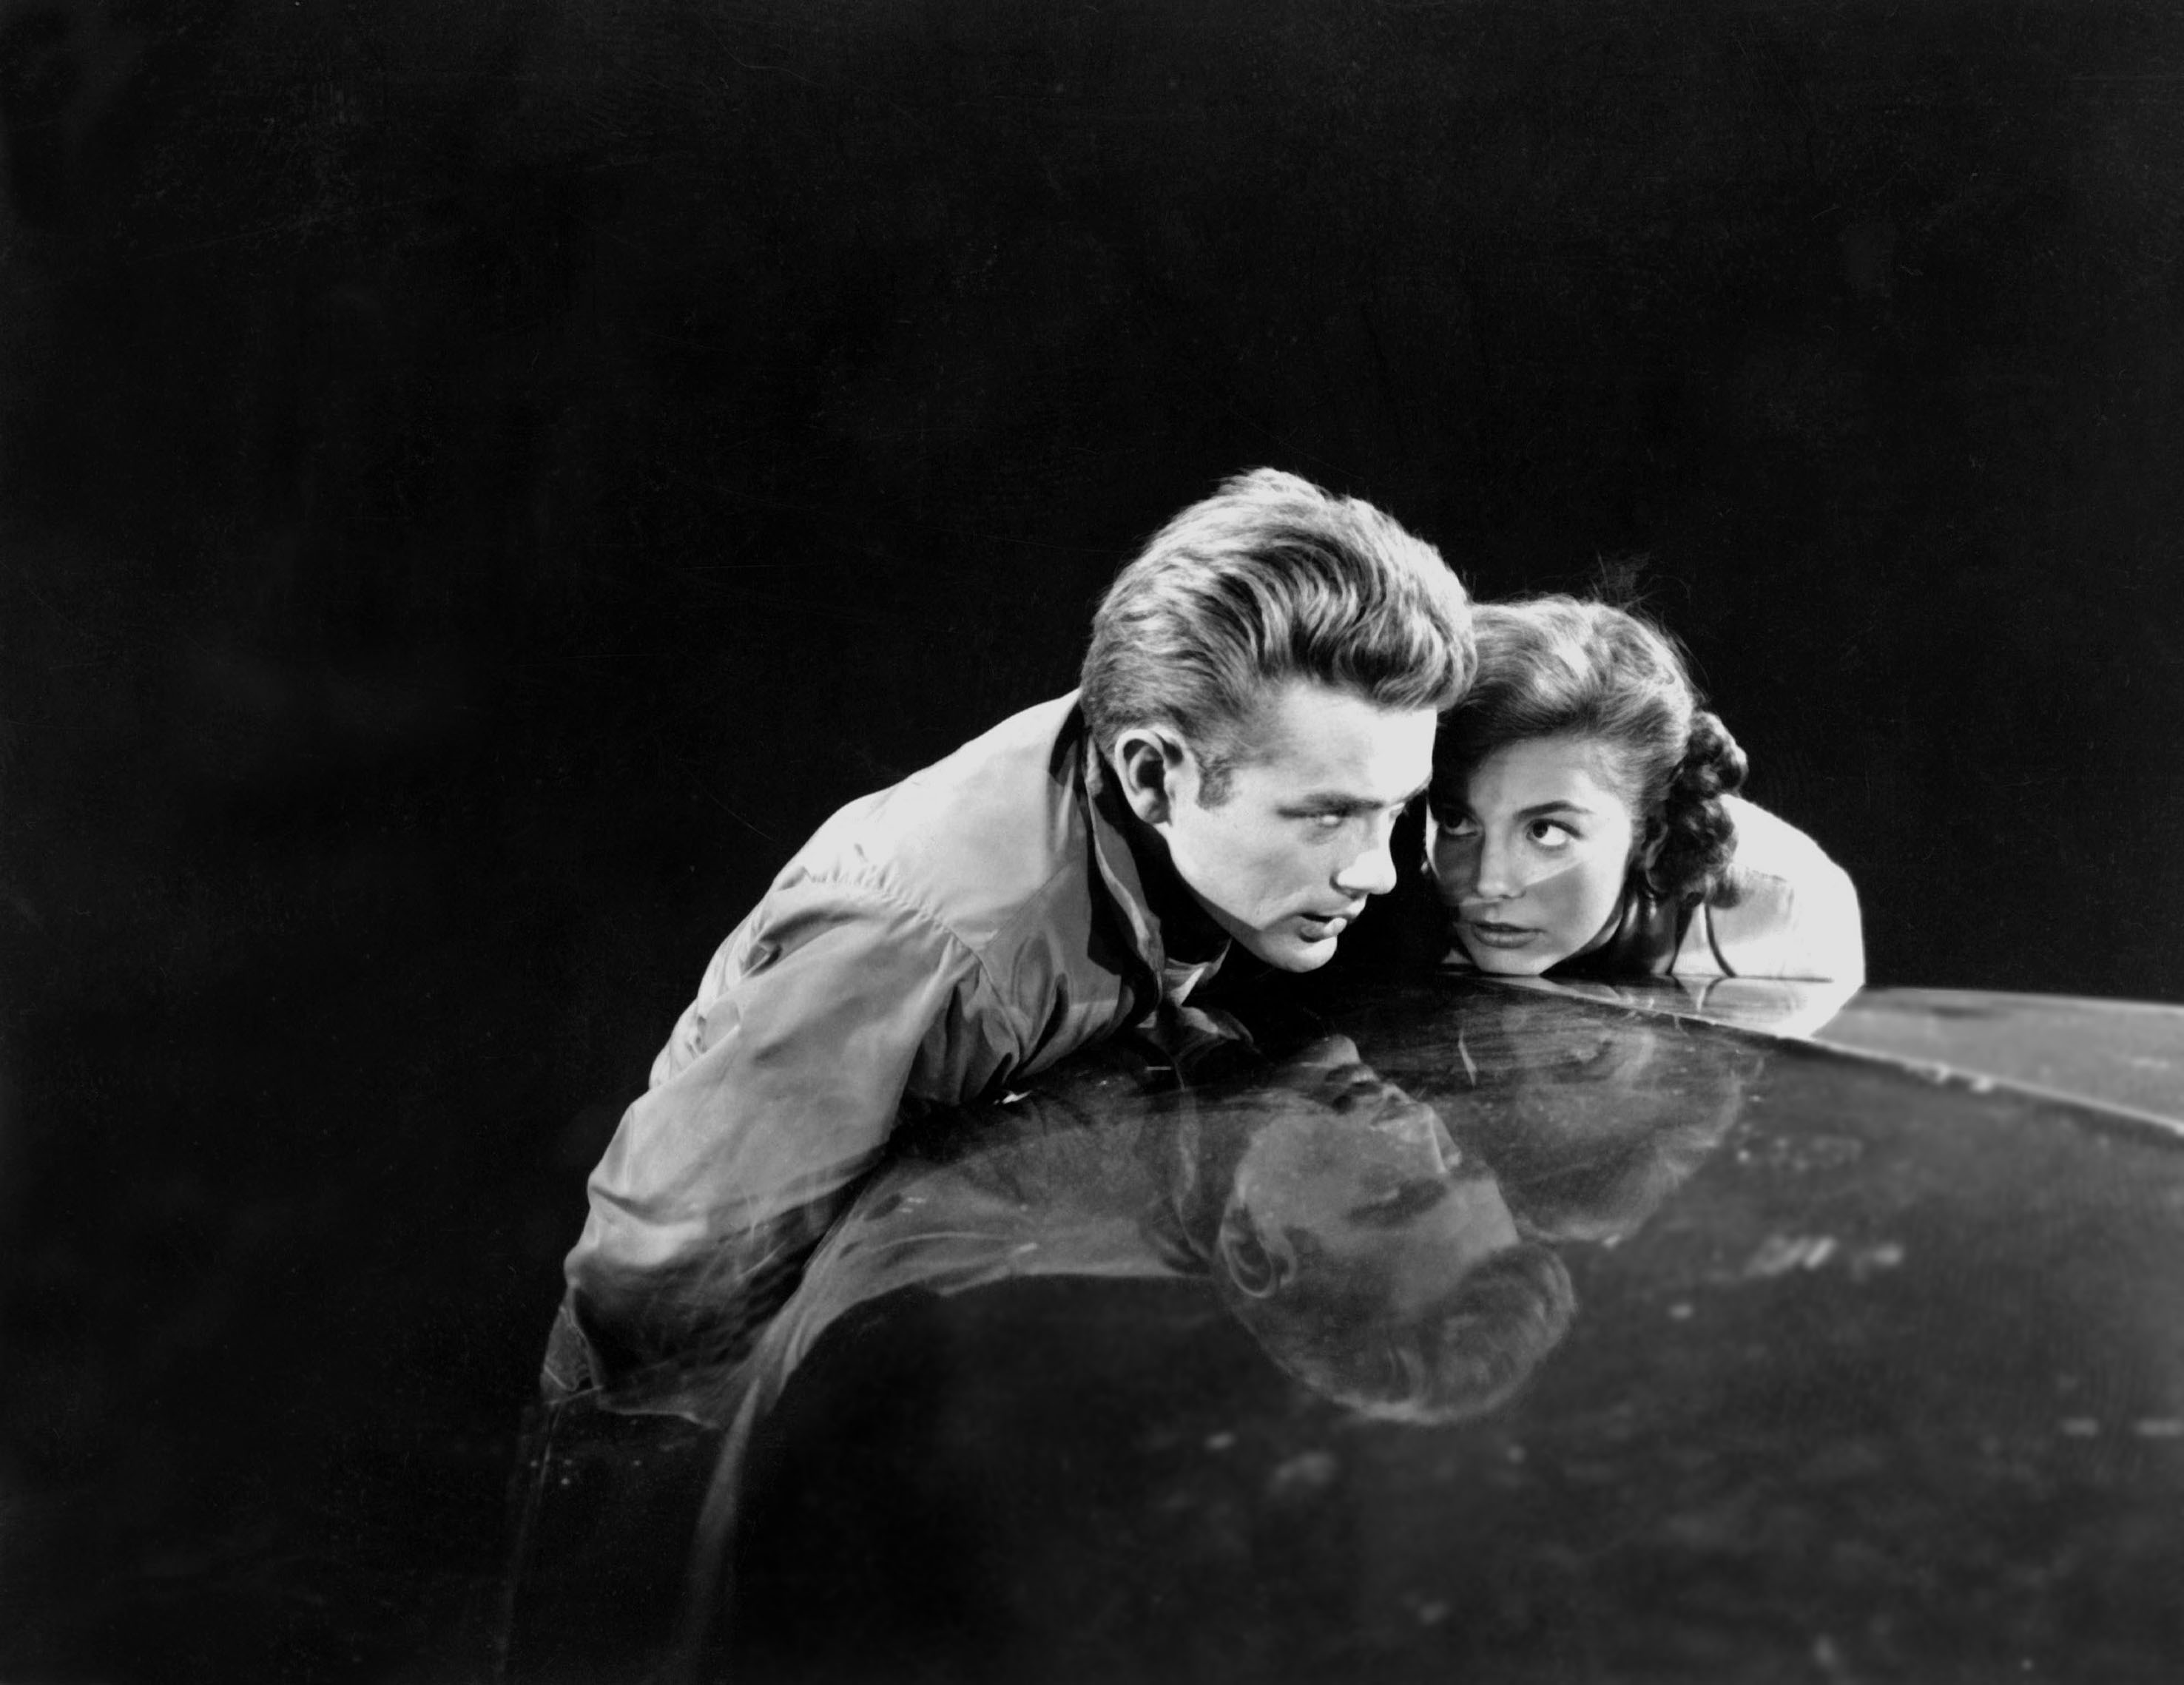 Rebel Without A Cause's gender portrayal is thankfully outdated